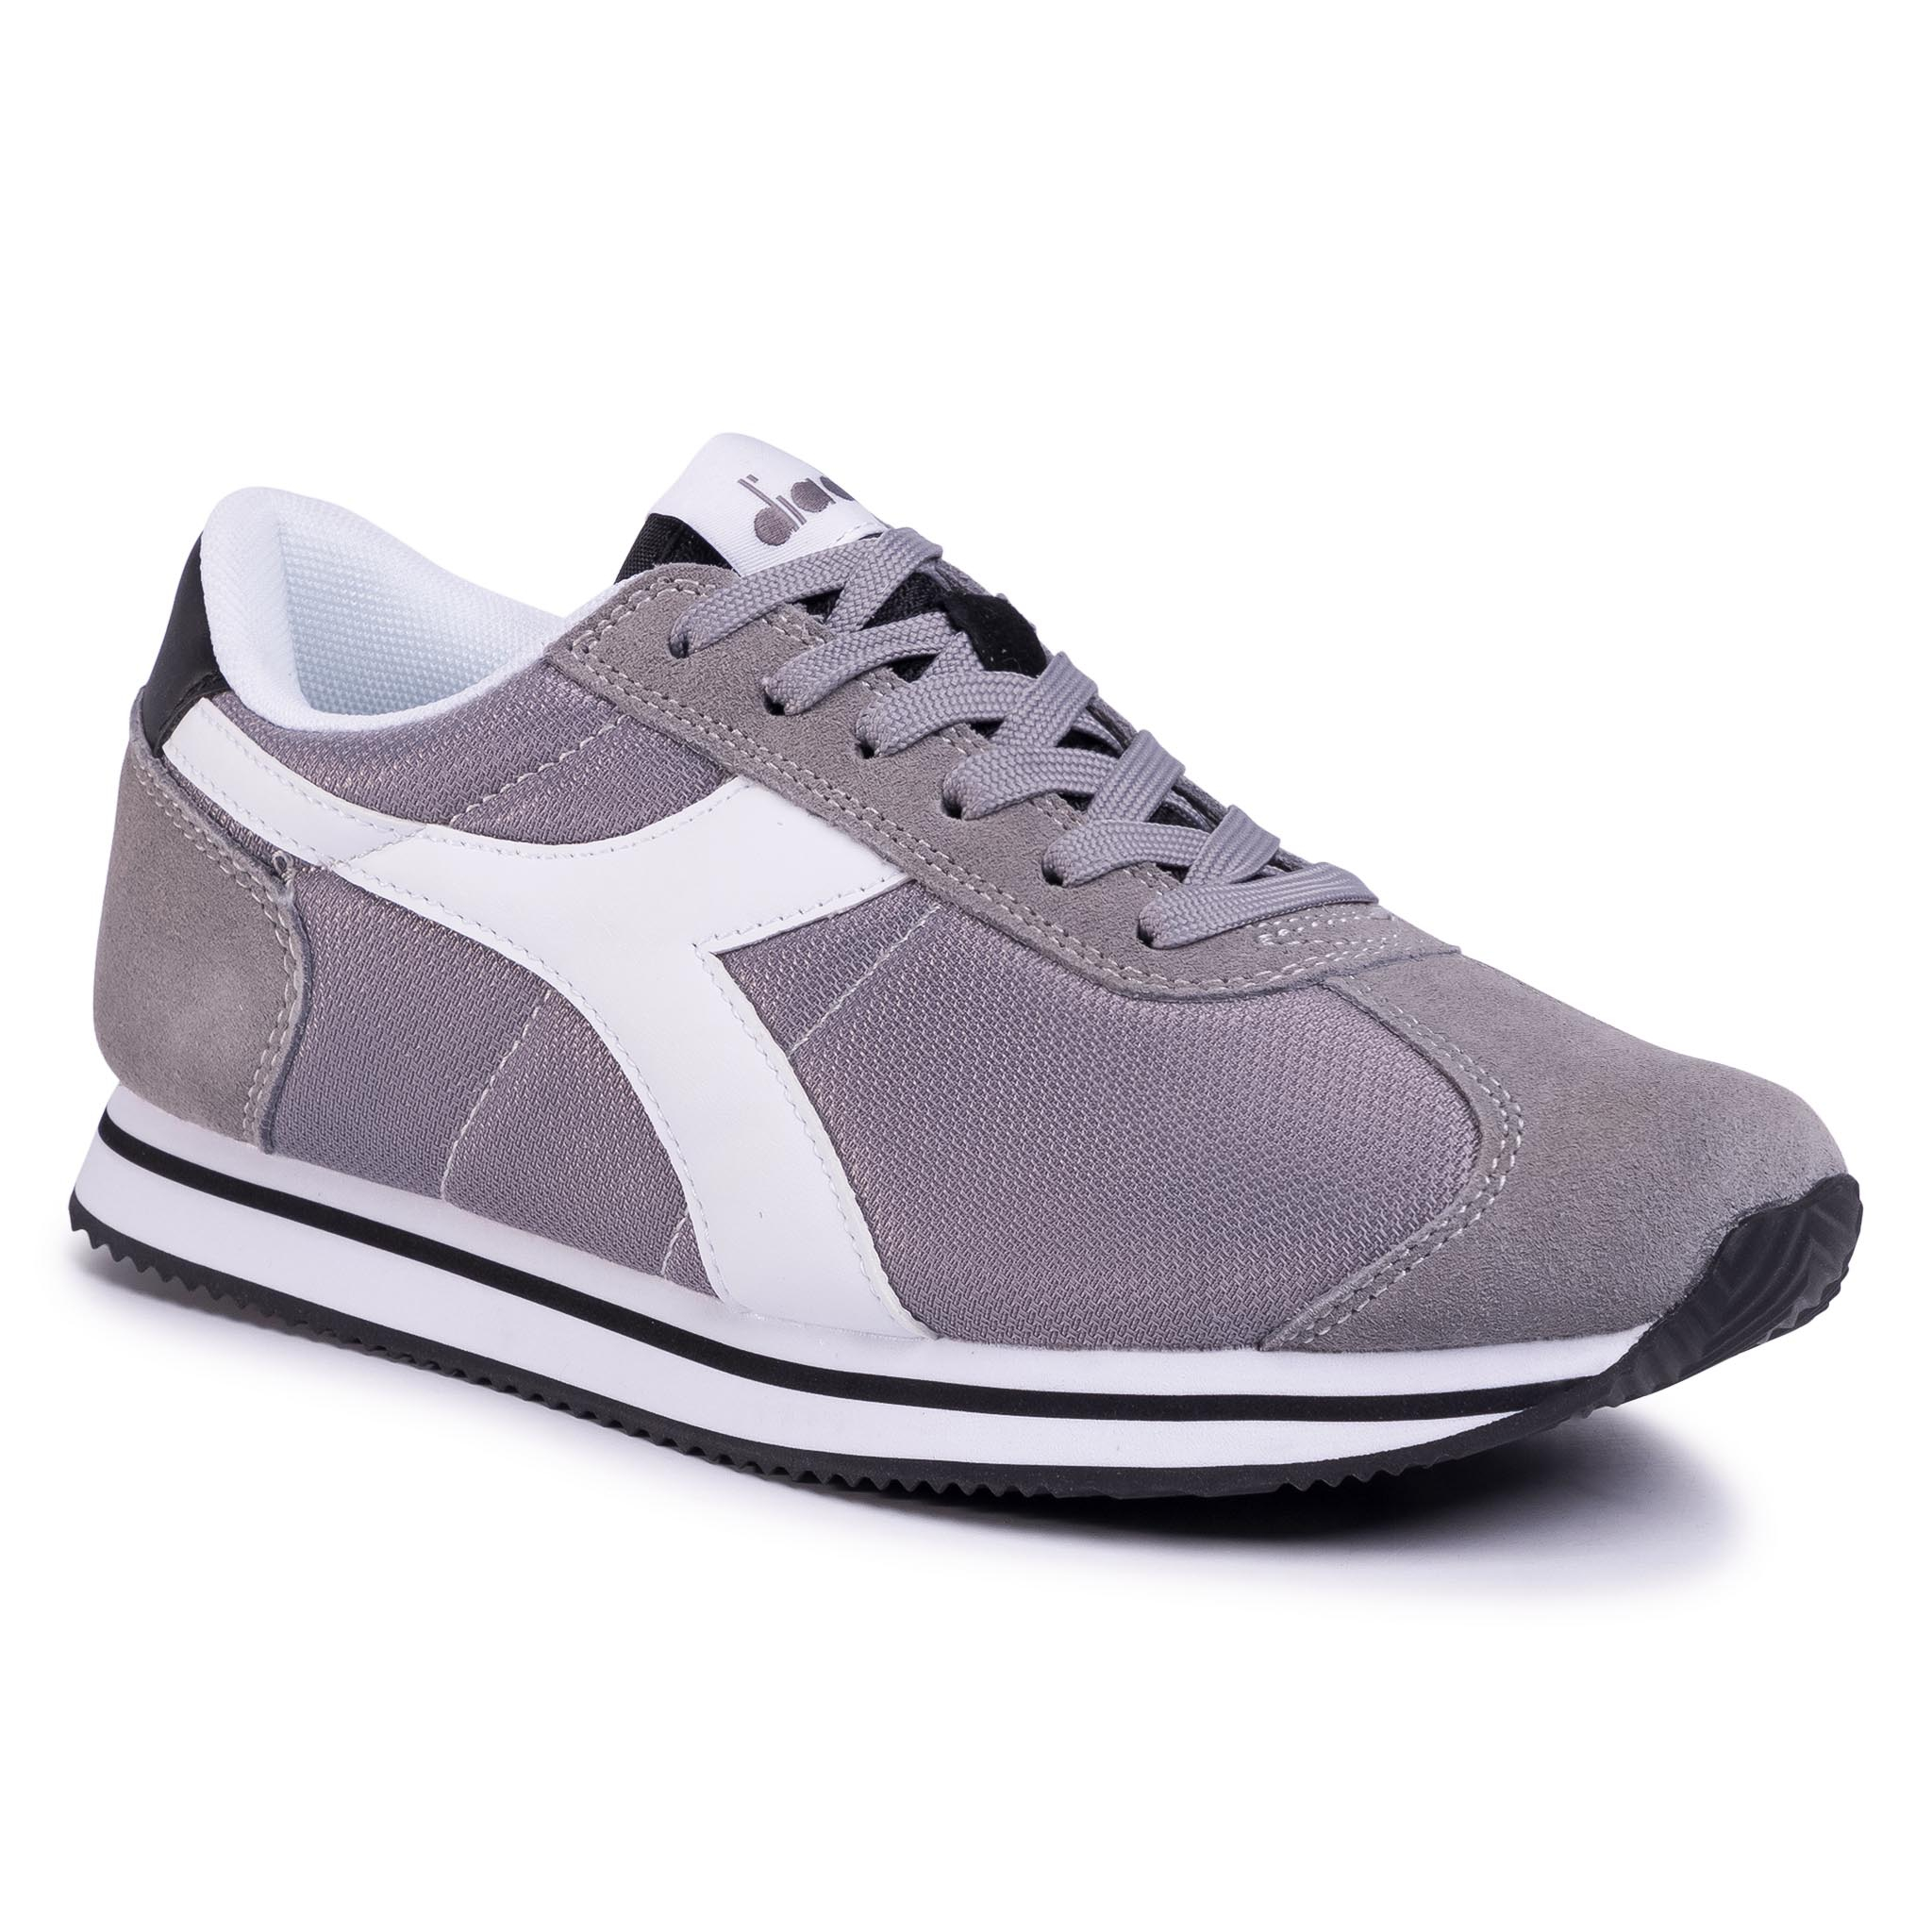 Sneakers DIADORA - Vega 101.175065 01 C5888 Ice Gray/White